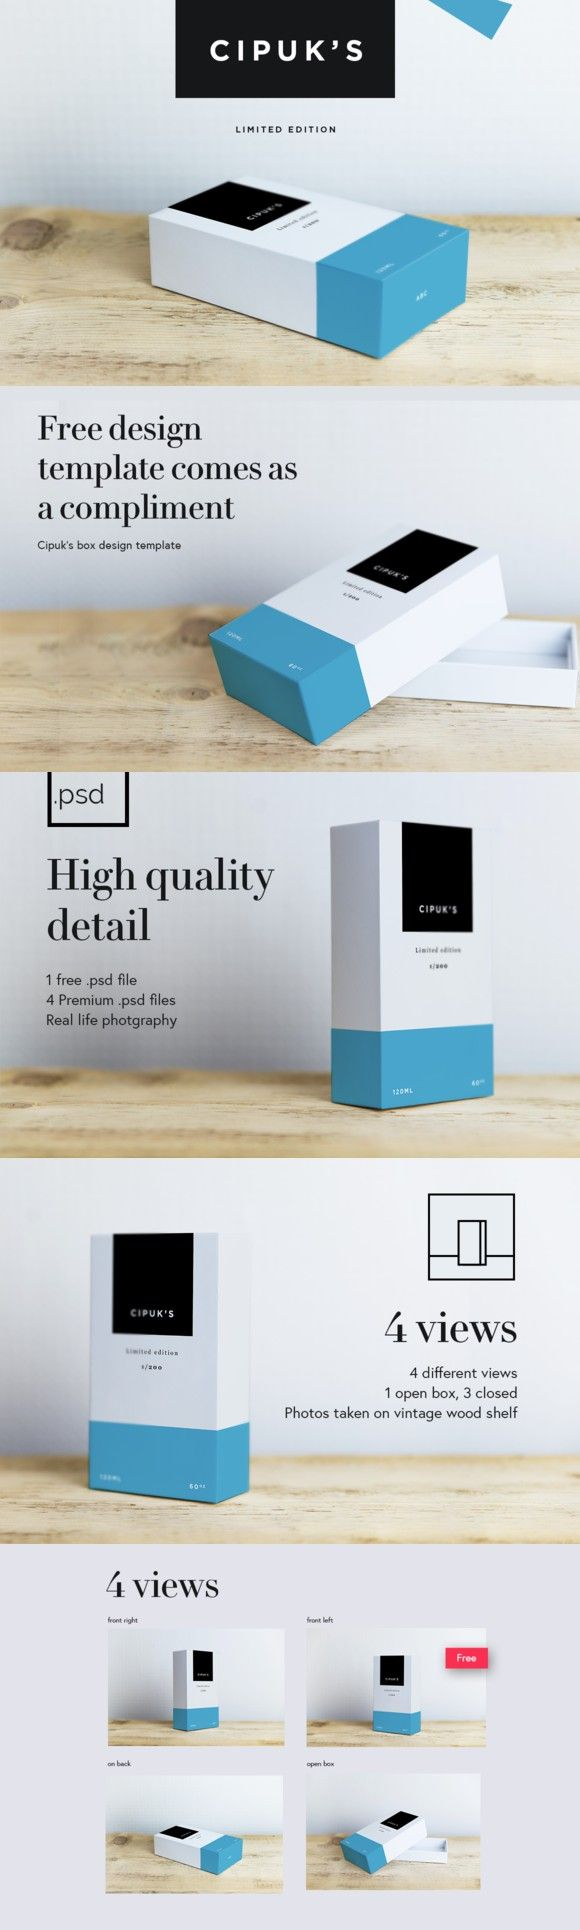 Download Cipuks Premium Box mockup / template | Box mockup, Mockup ...